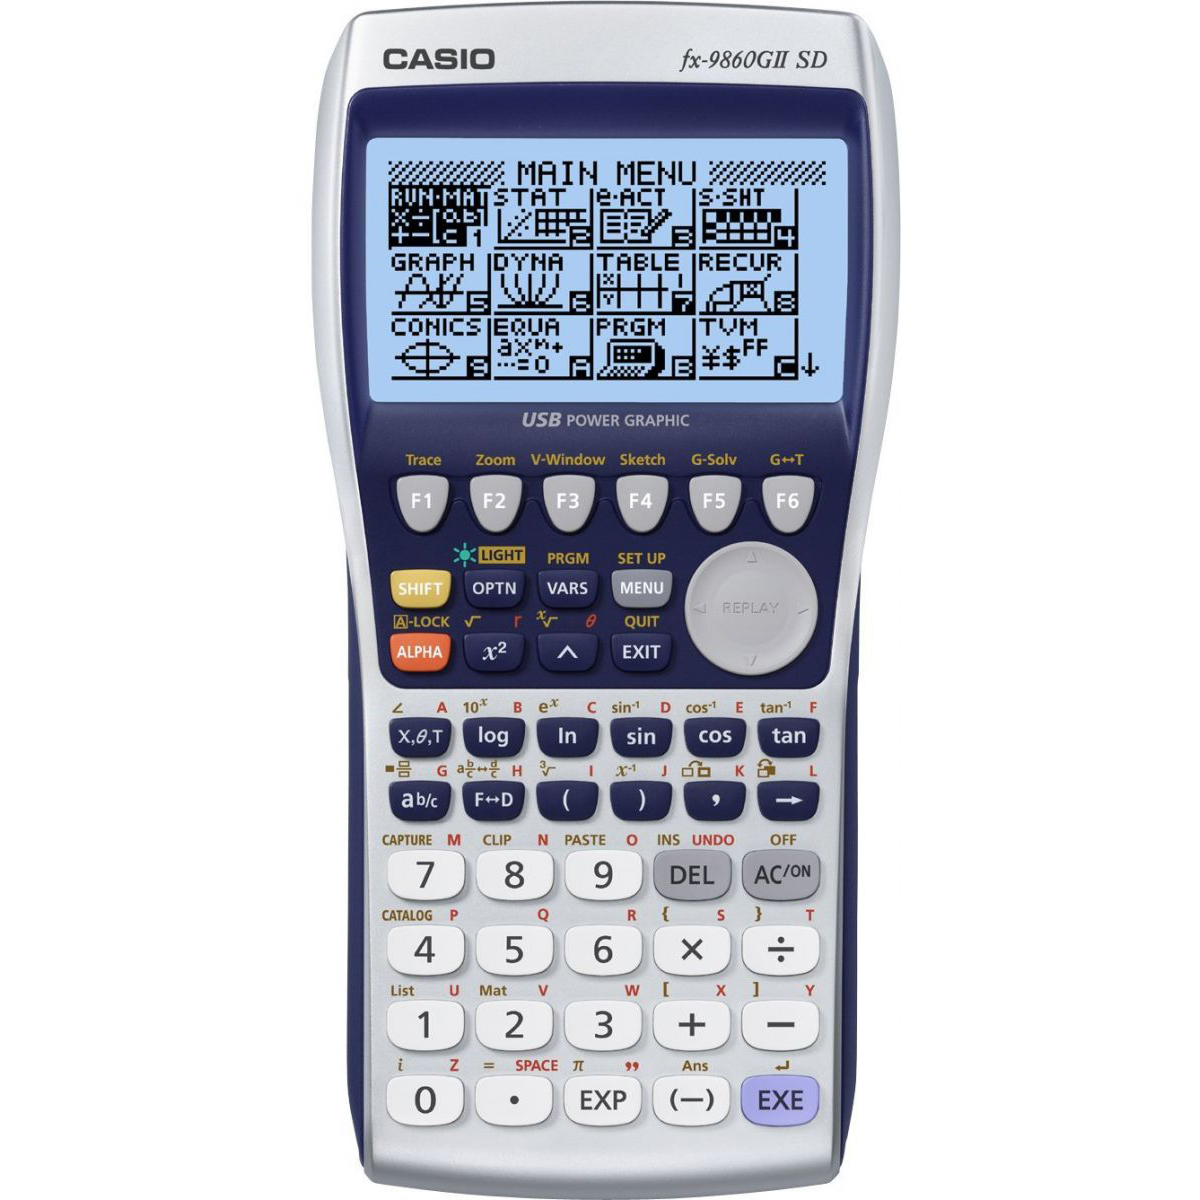 Casio FX9860GII SD Graphic Calculator